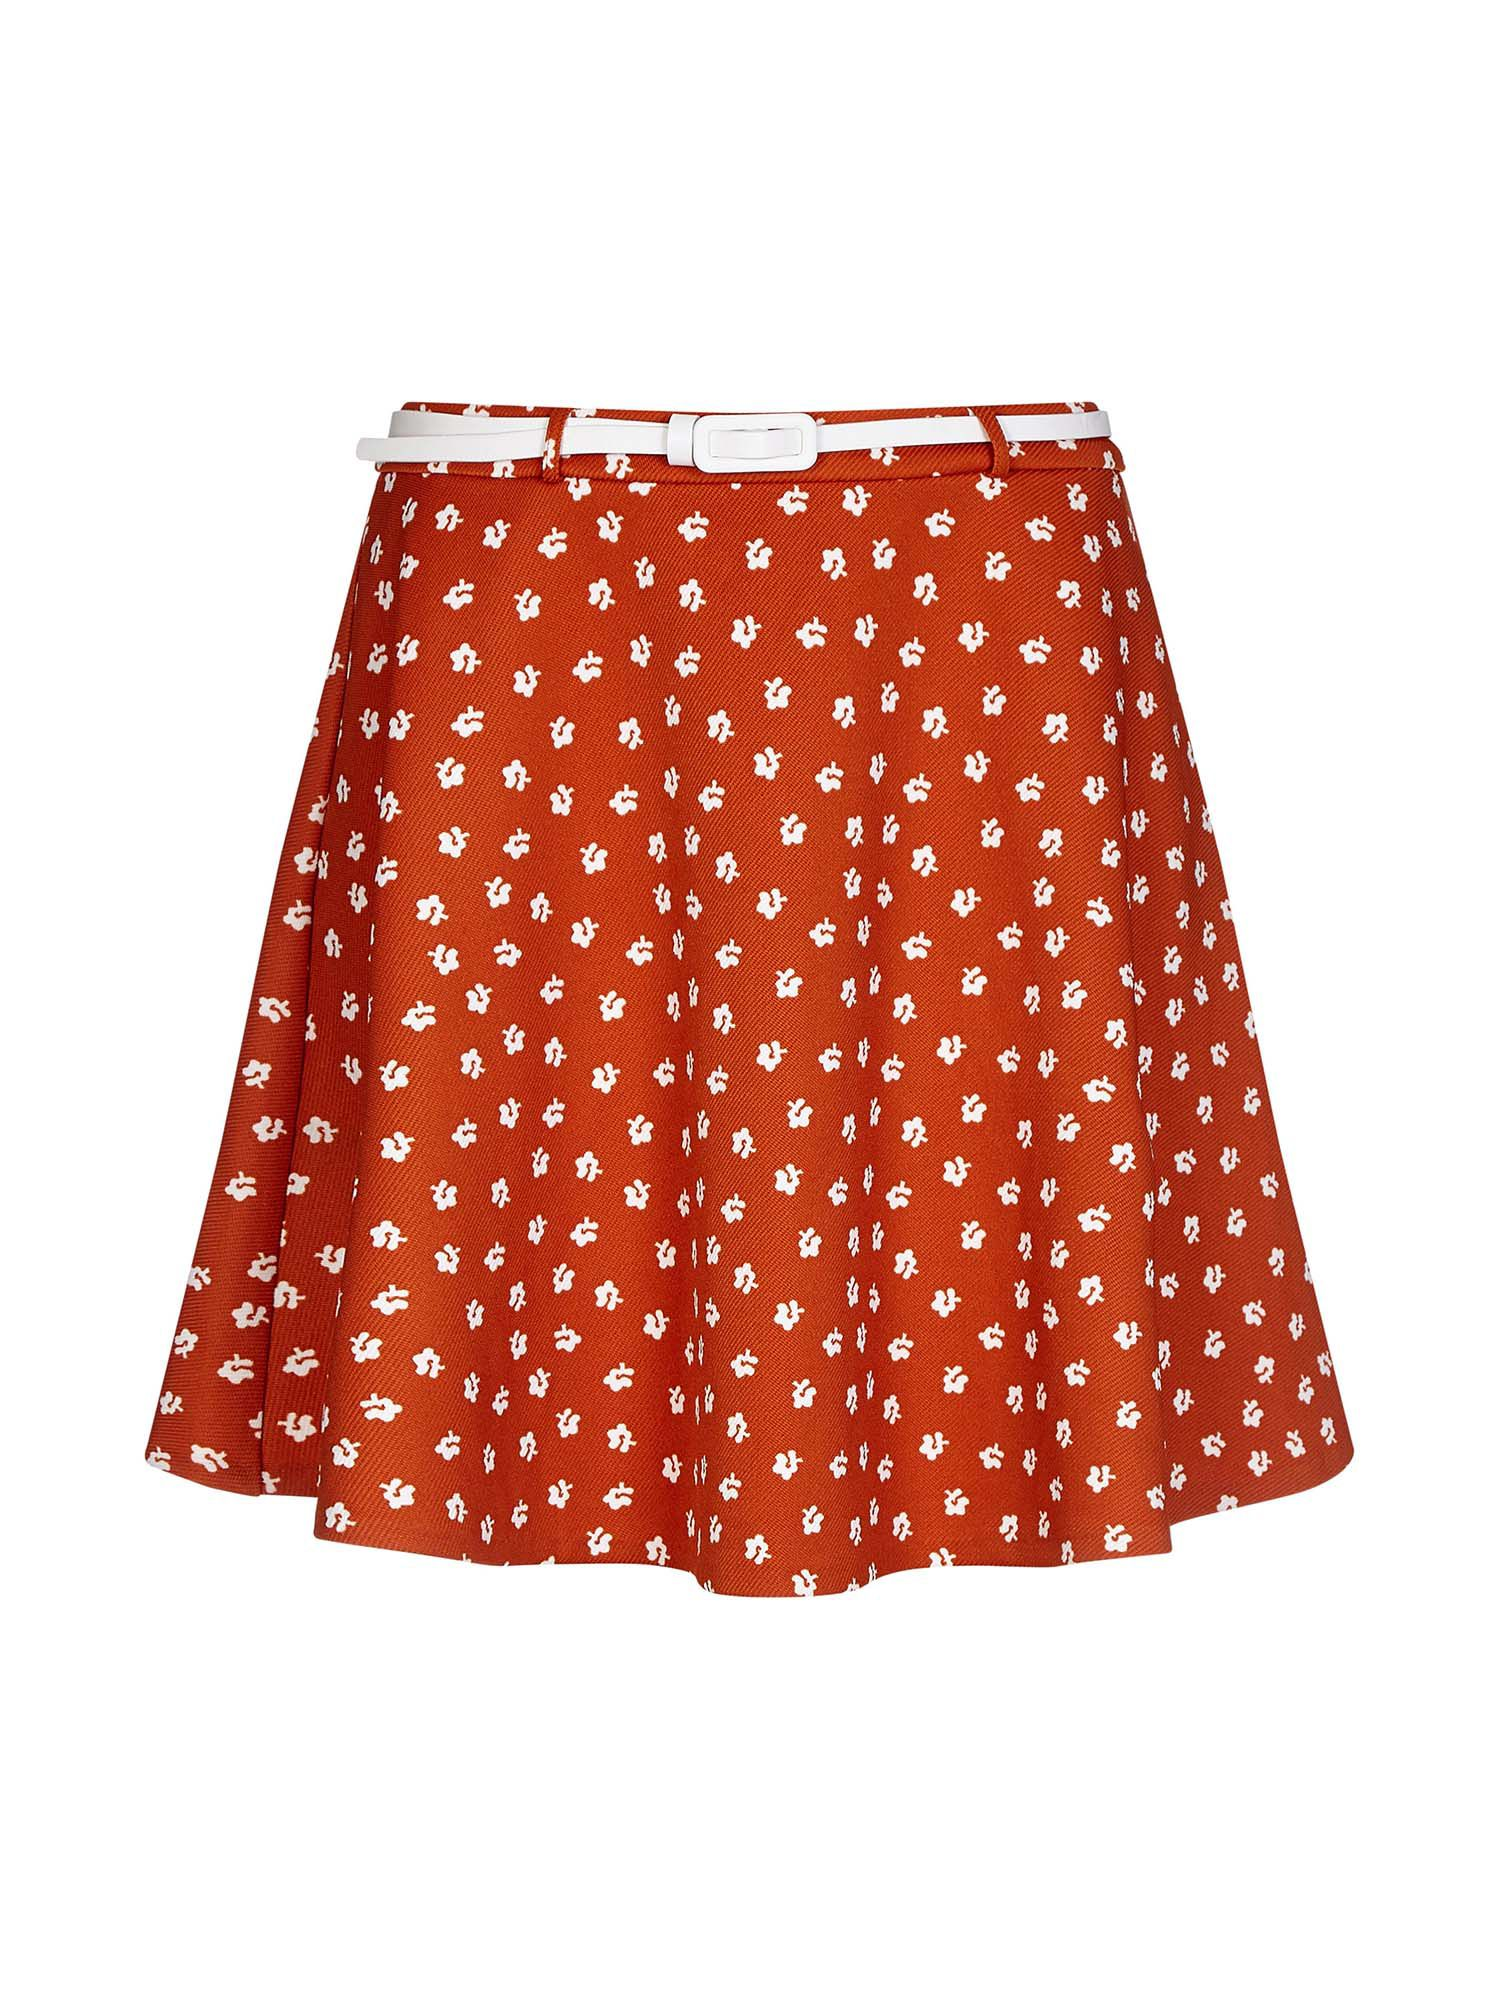 Yumi Daisy Print Skirt, Orange